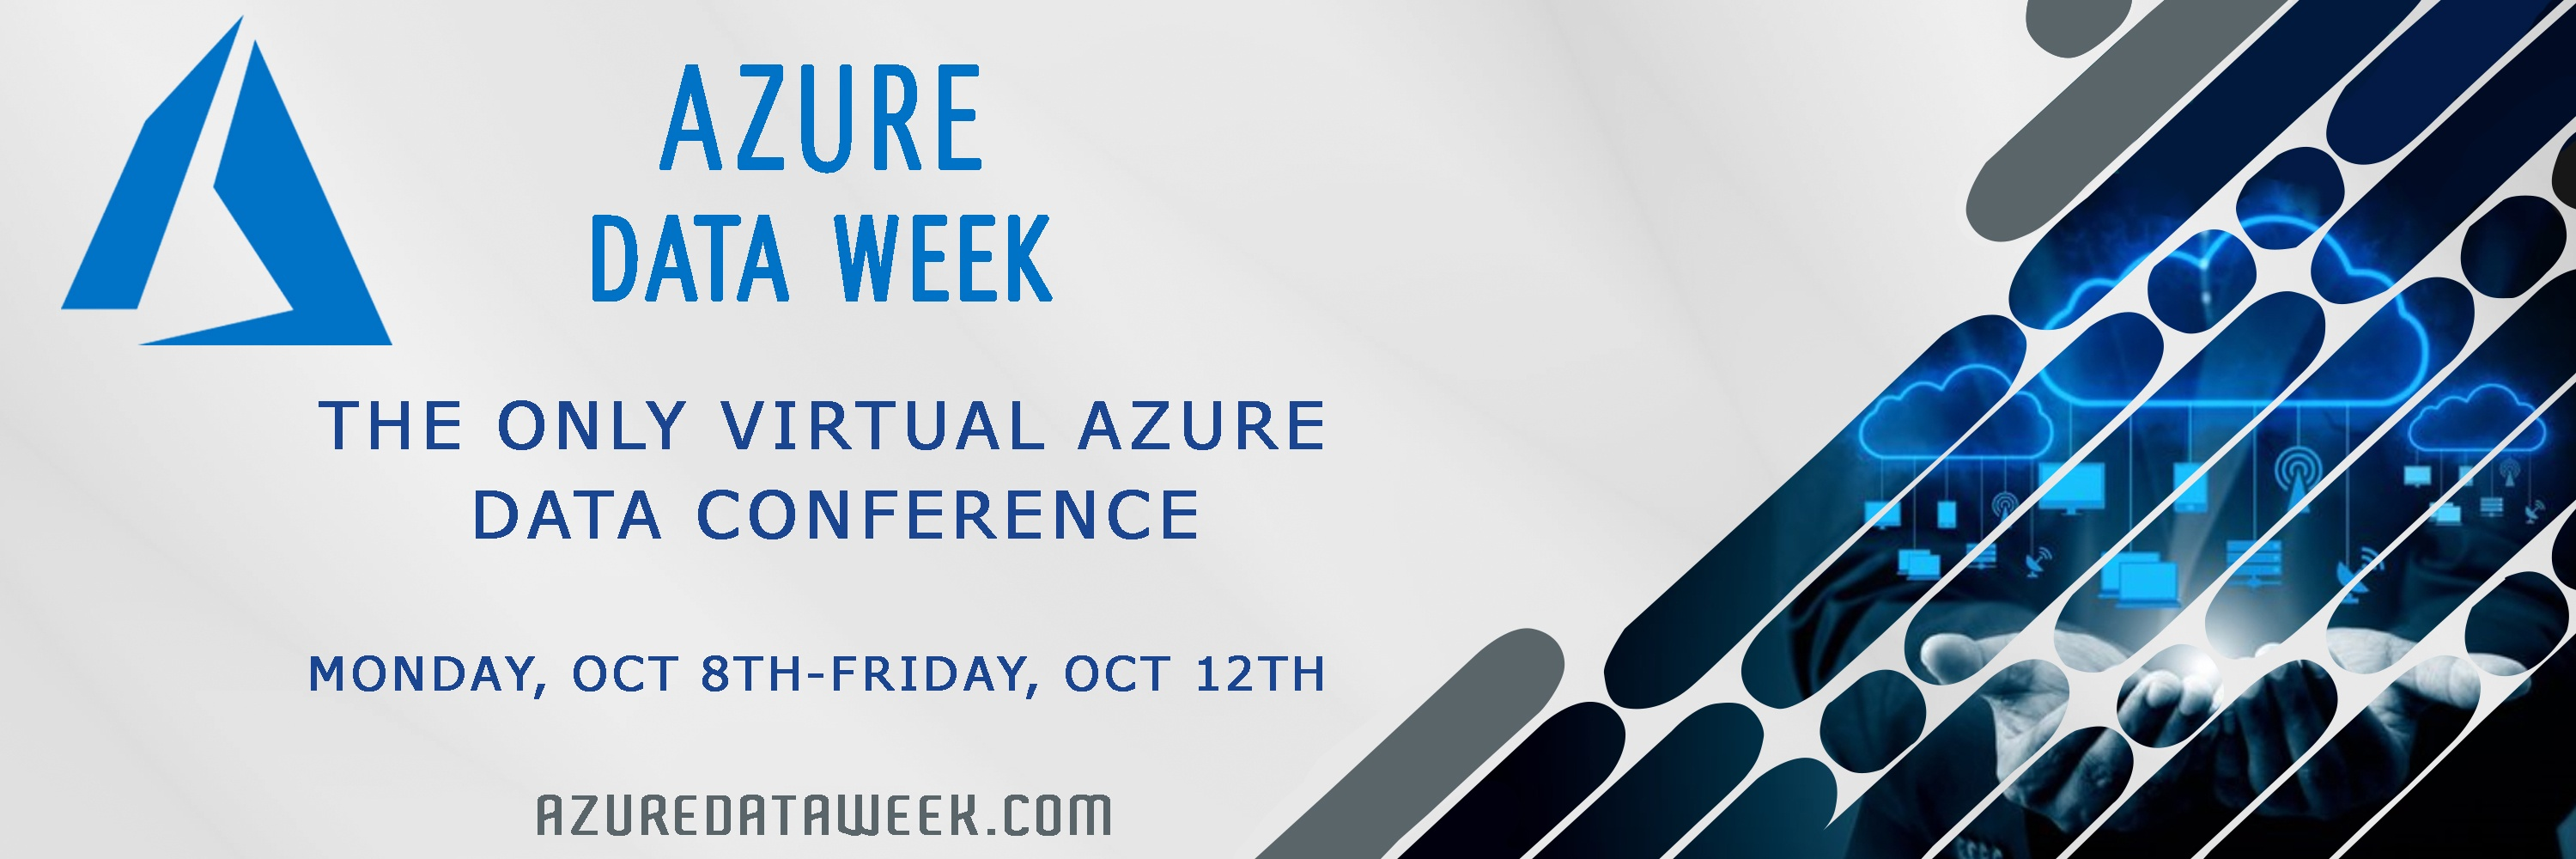 Azure Data Week - Azure Security and Management Overview